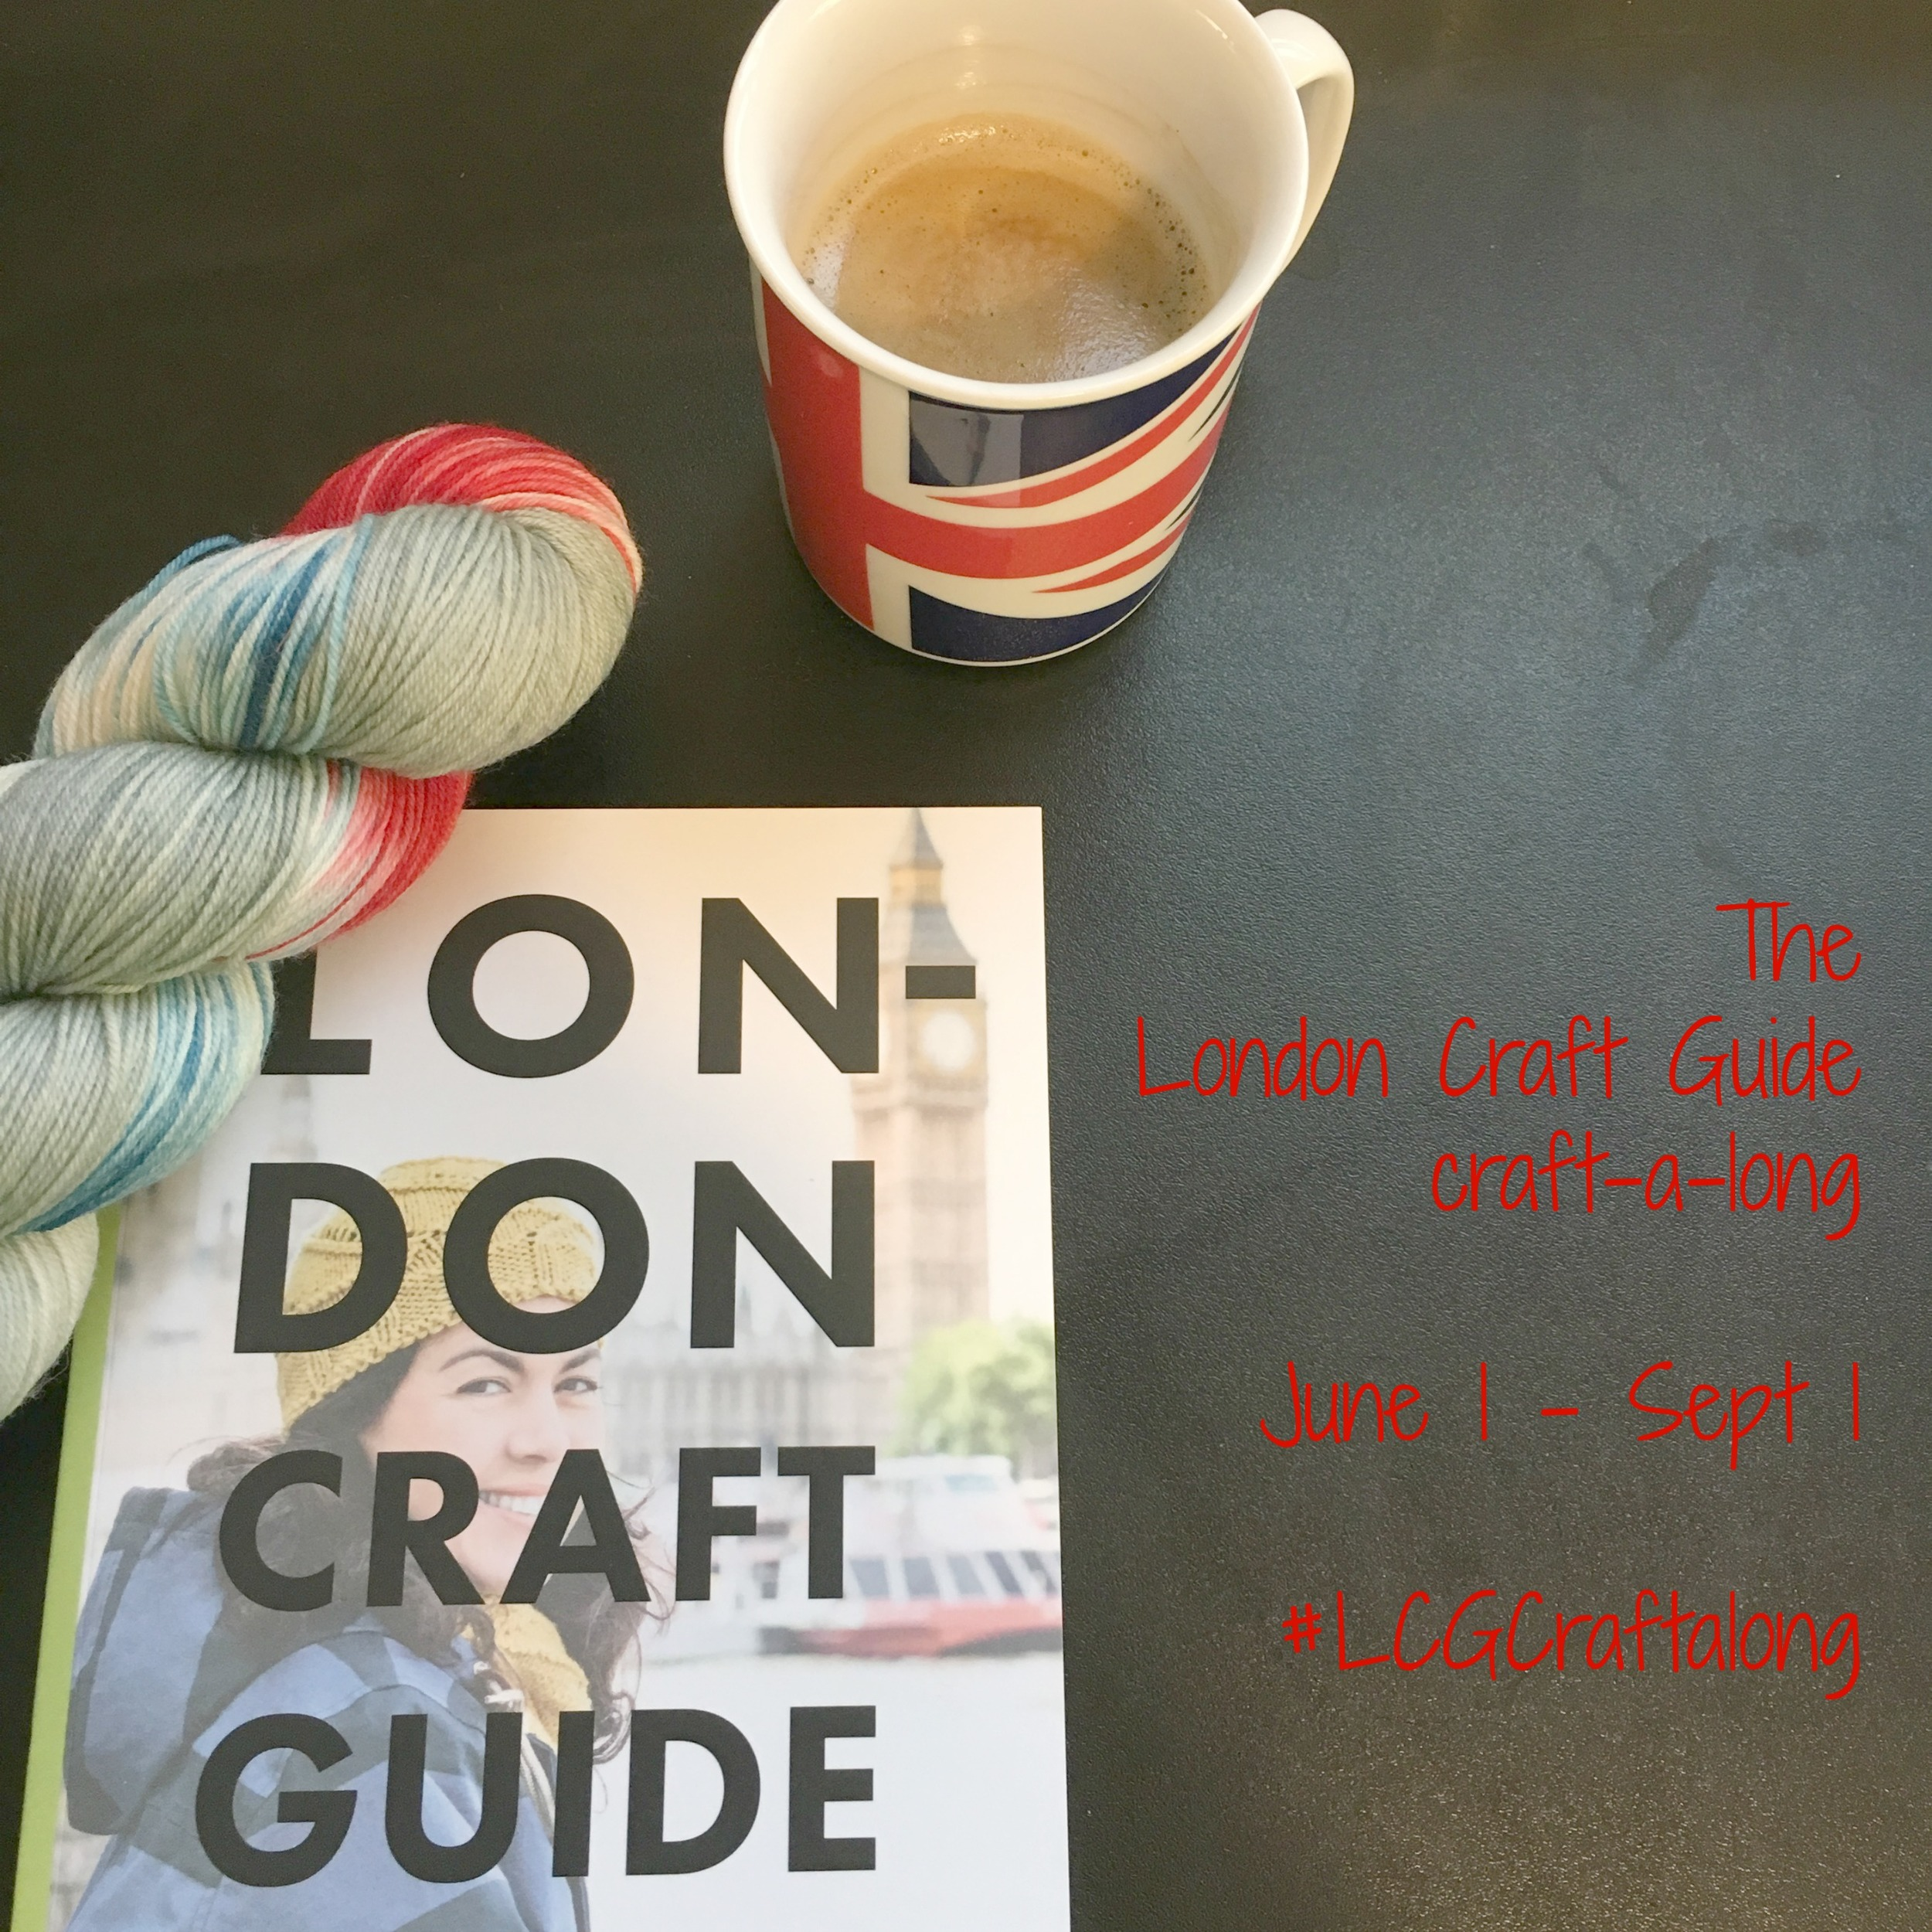 Our Craft-a-long for the London Craft Guide runs June 1 - September 1. Join us?